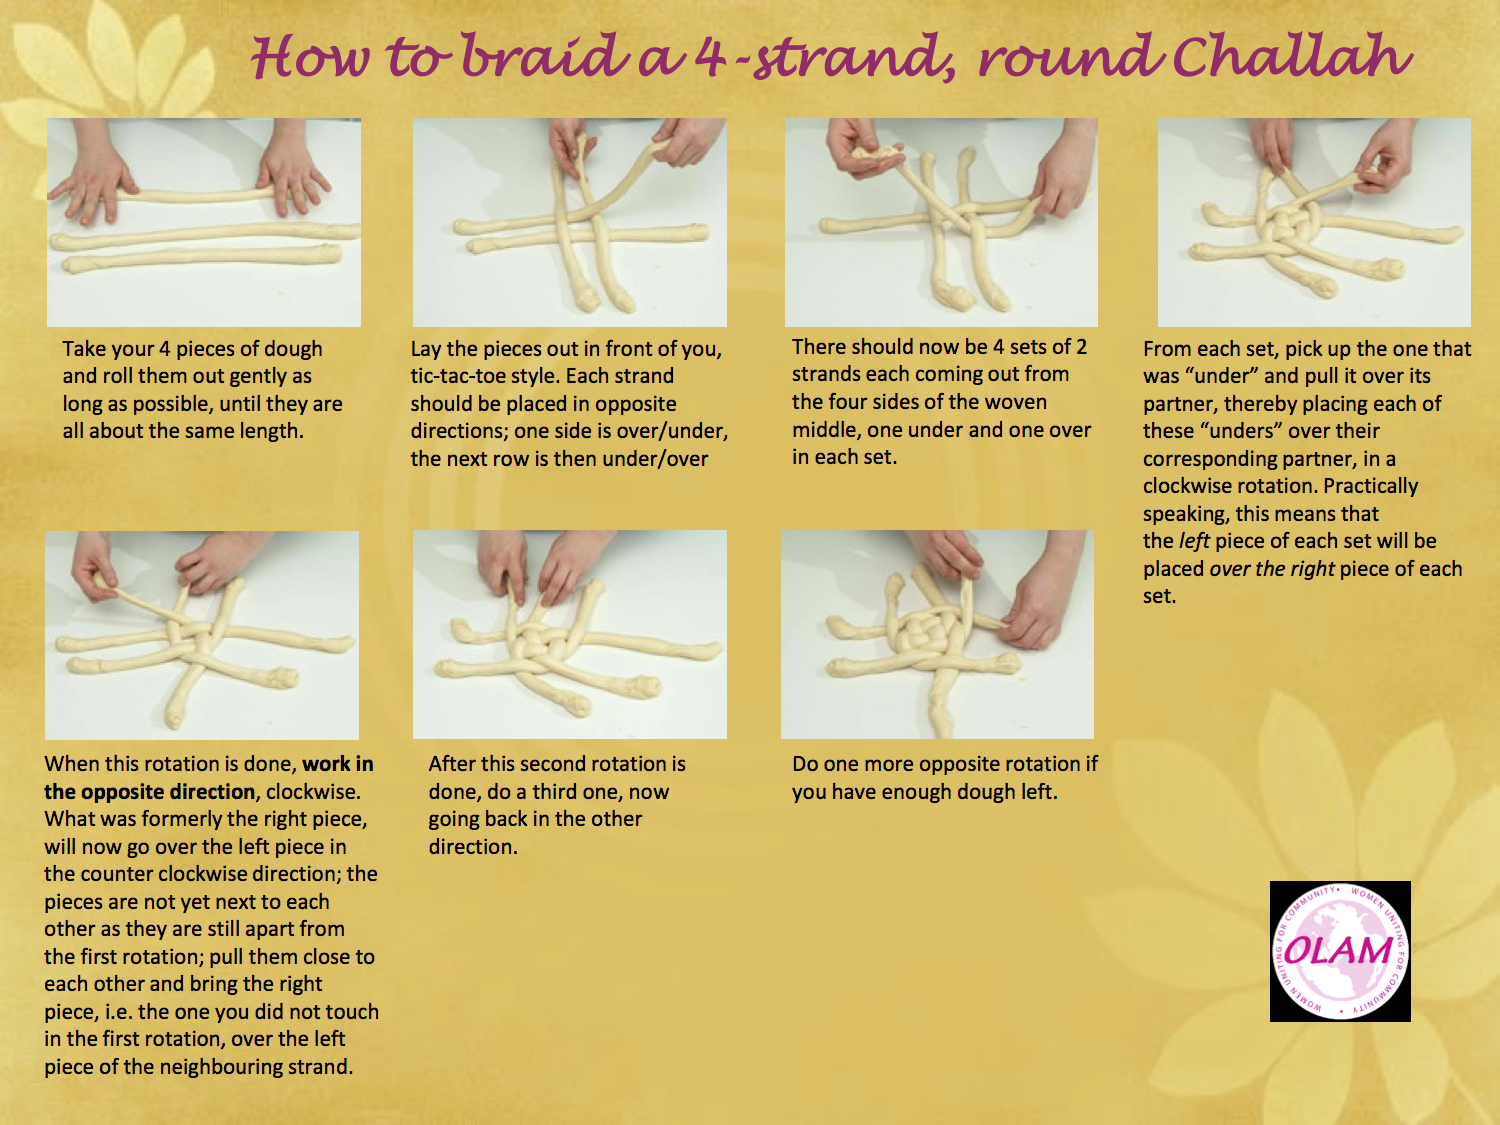 How to Wiki 89: How To Braid 4 Strands Challah